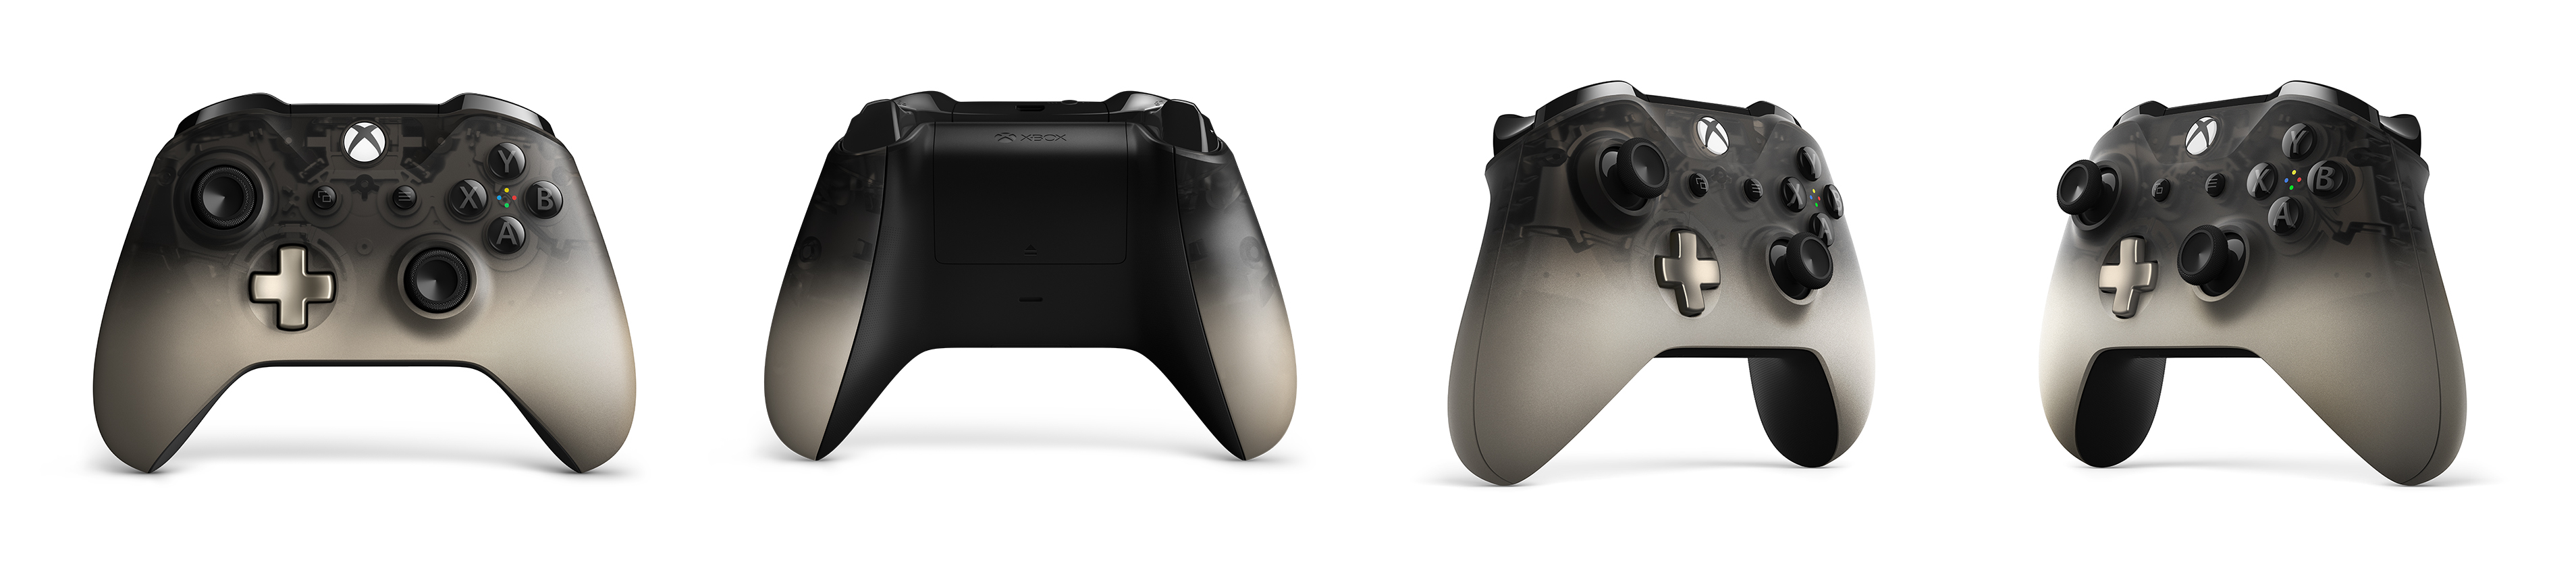 Phantom Black Special Edition Xbox Wireless Controller